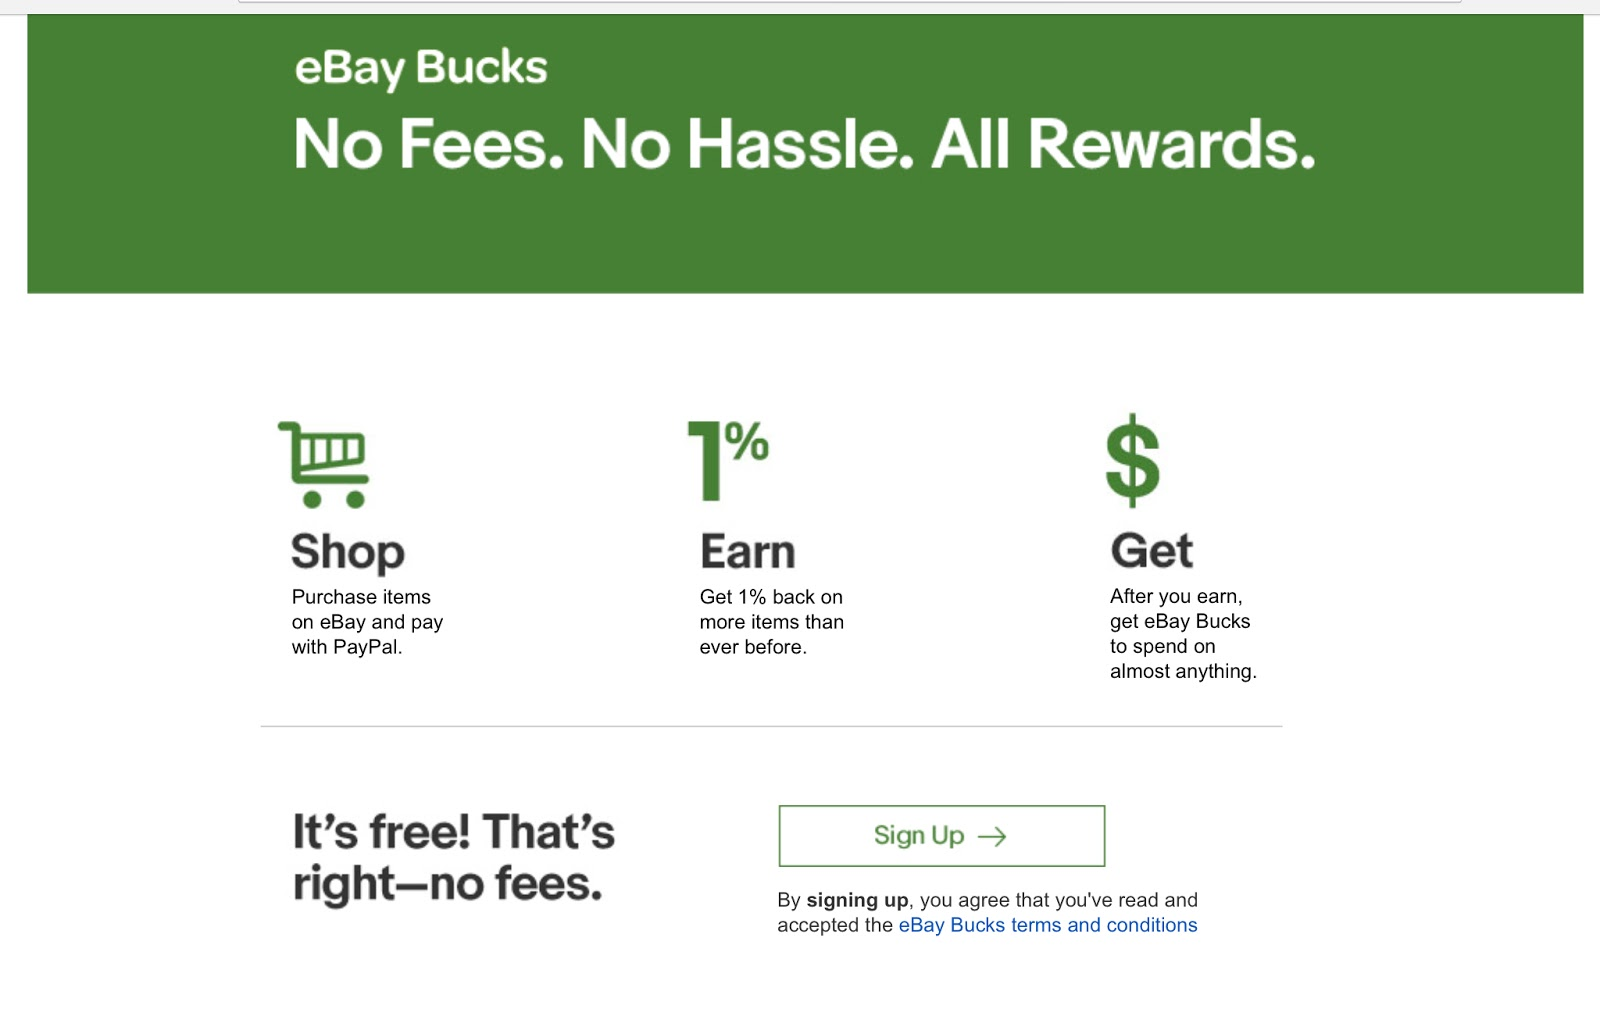 eBay offers eBay Bucks, but lacks the incentive that shoppers feel when they pay to play.